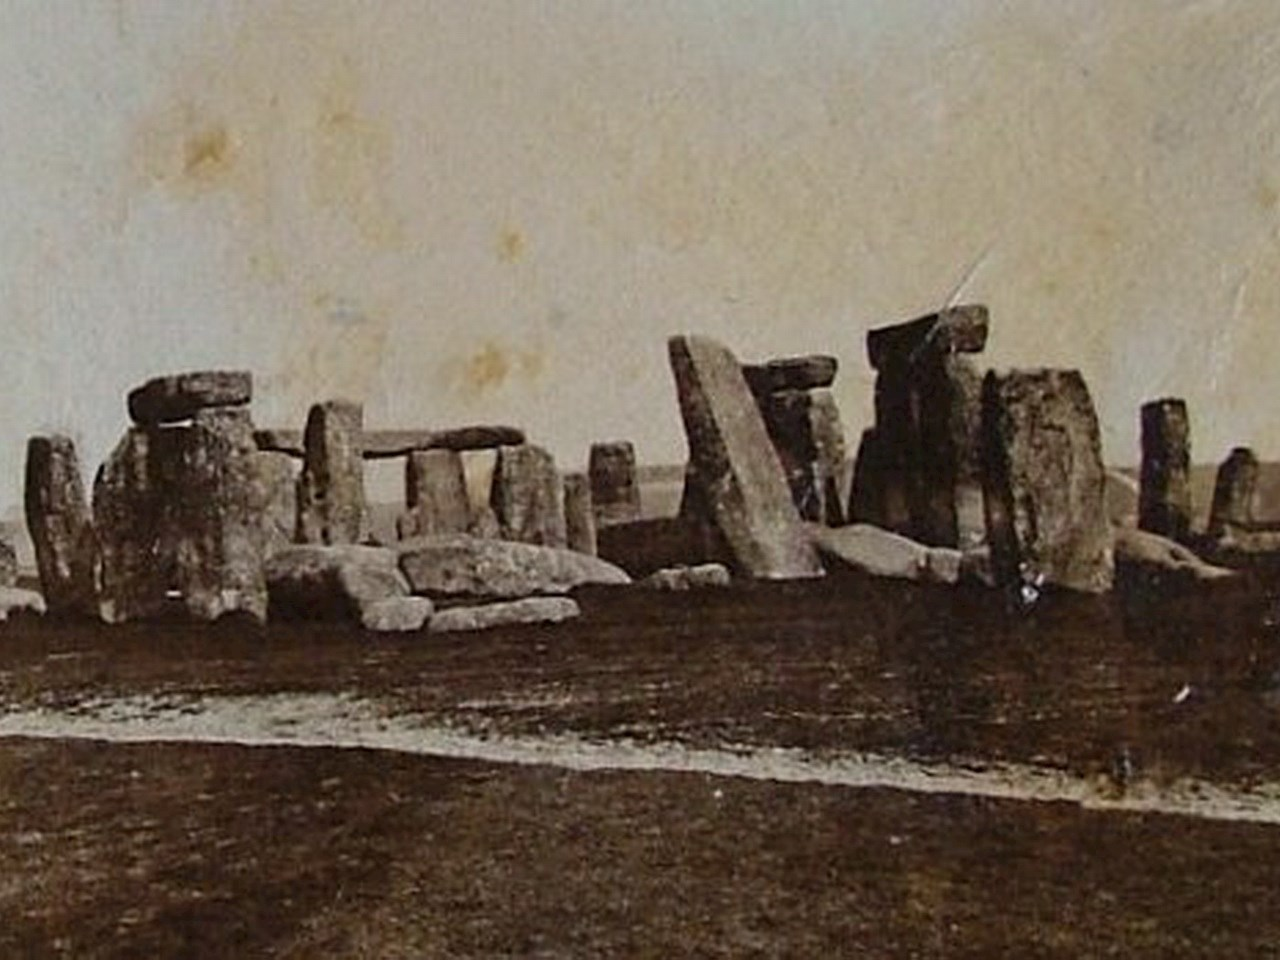 An early photograph of Stonehenge